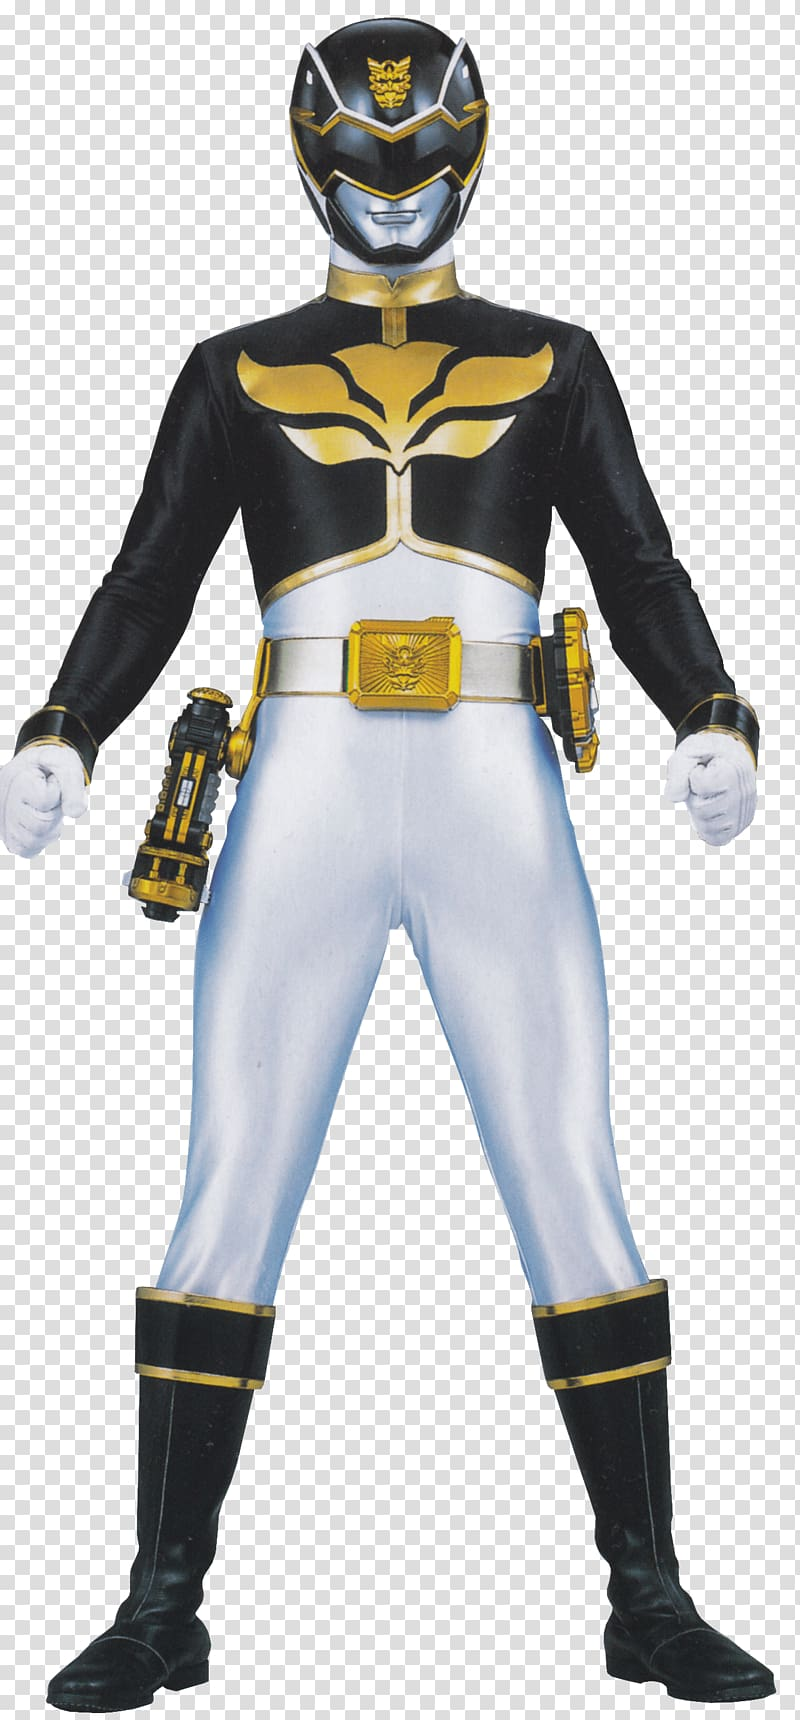 Power Ranger Black Ranger, Megaforce Black transparent.